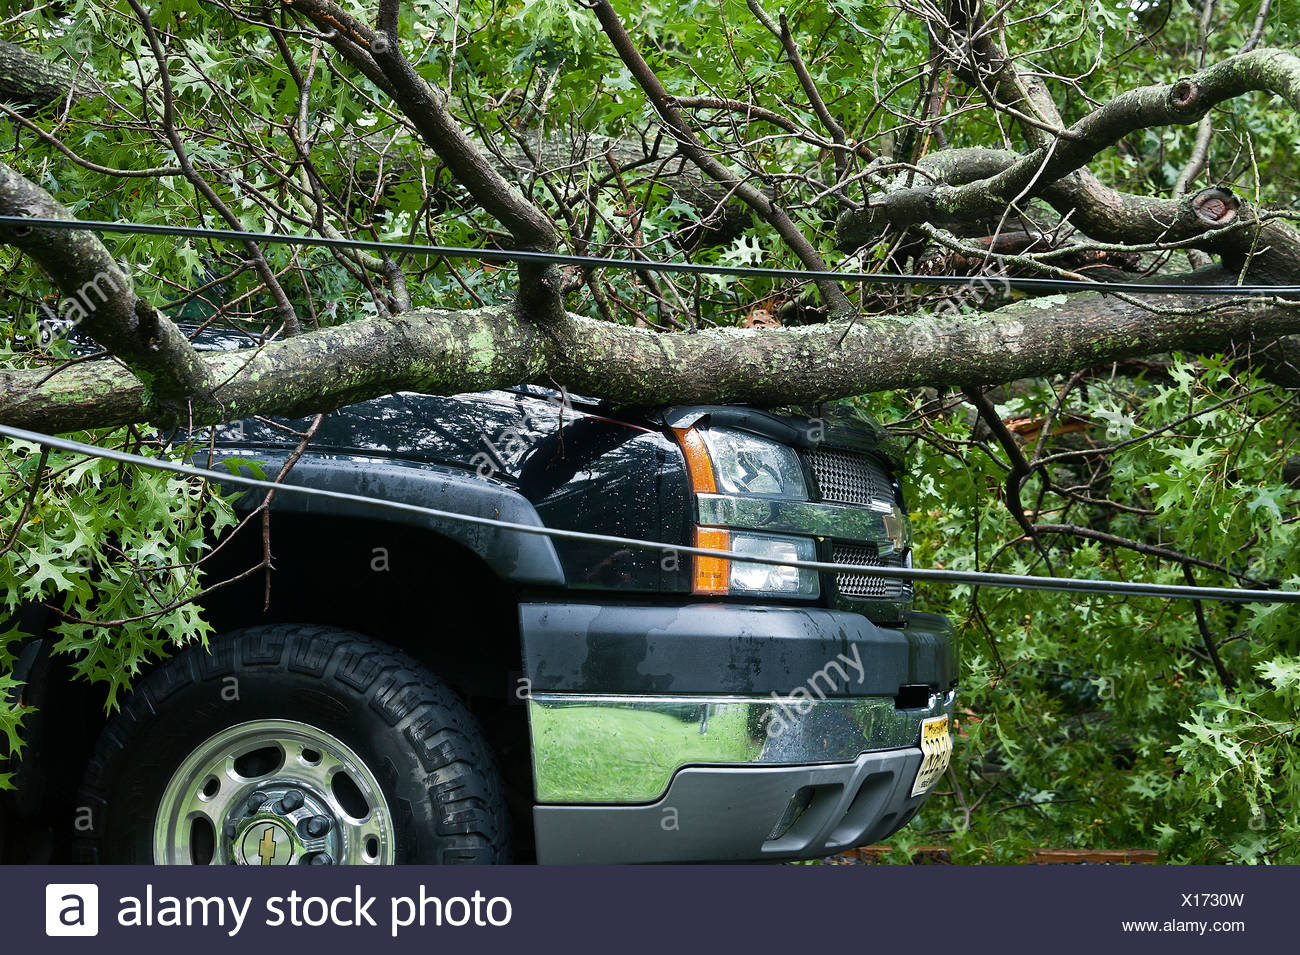 Auto damage caused by fallen tree in storm. - Stock Image